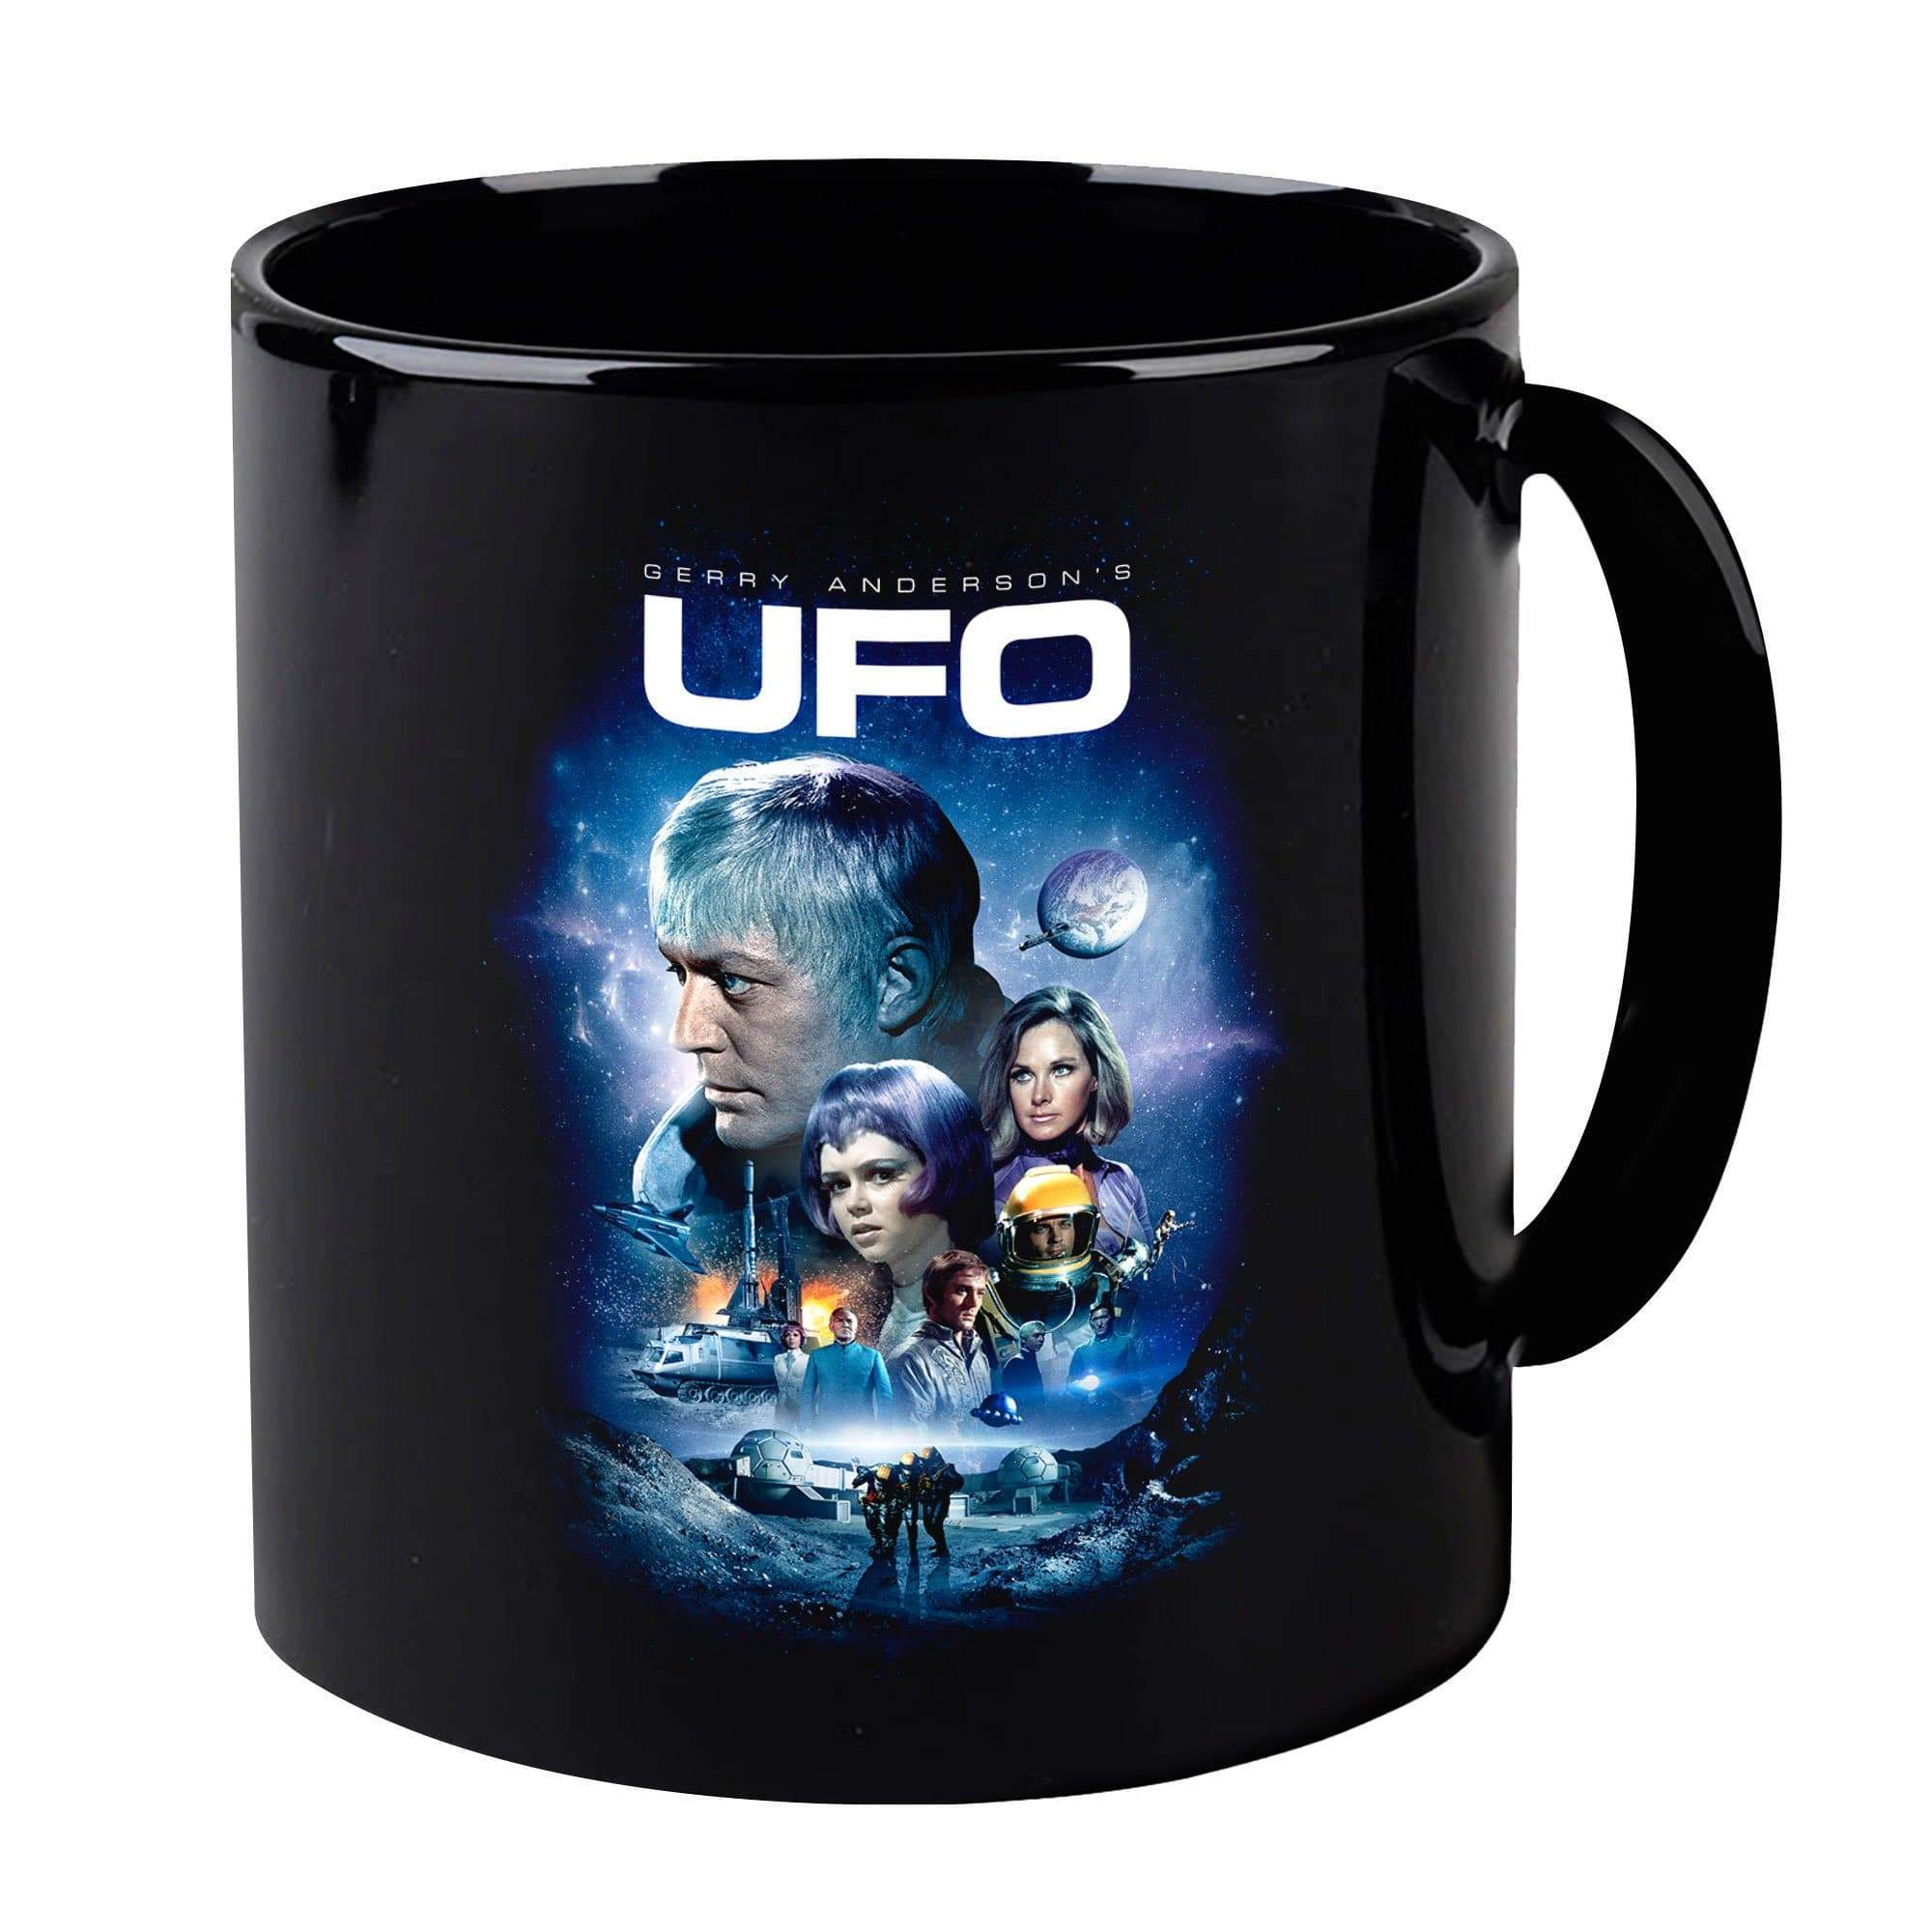 UFO Black Mug [Official & Exclusive] - The Gerry Anderson Store